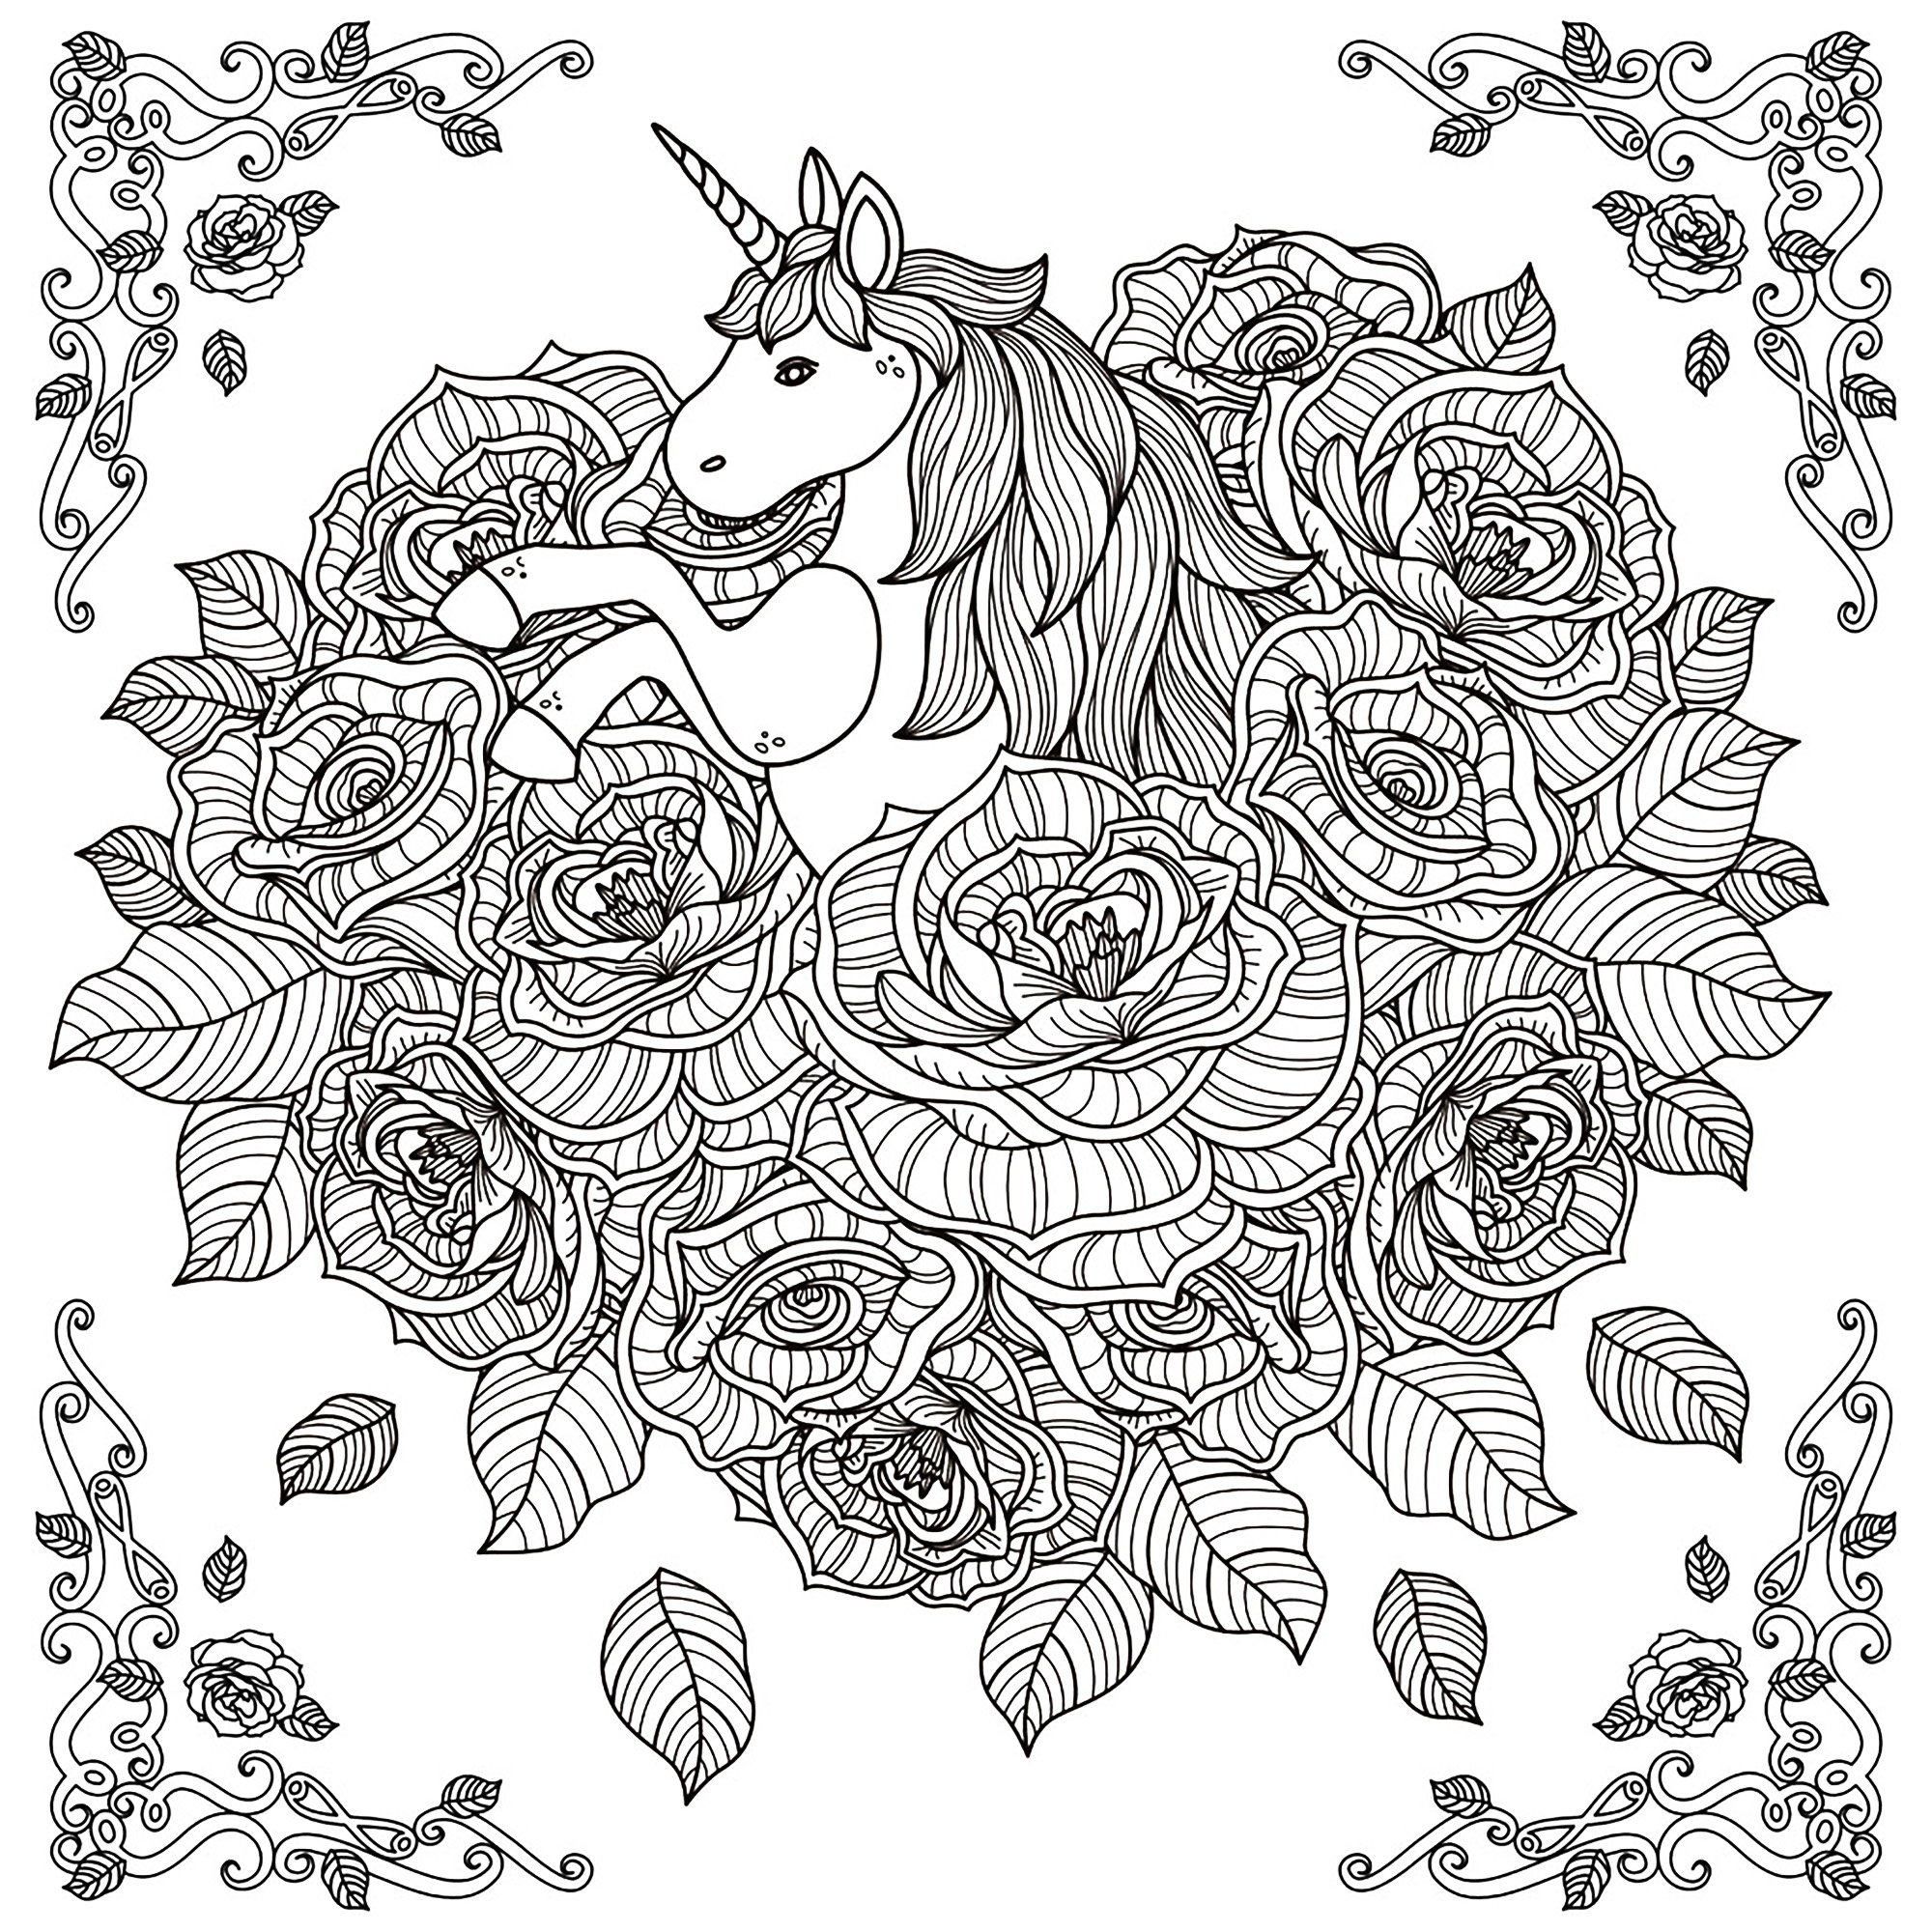 Beautiful Unicorn and Roses Art for Adult Coloring